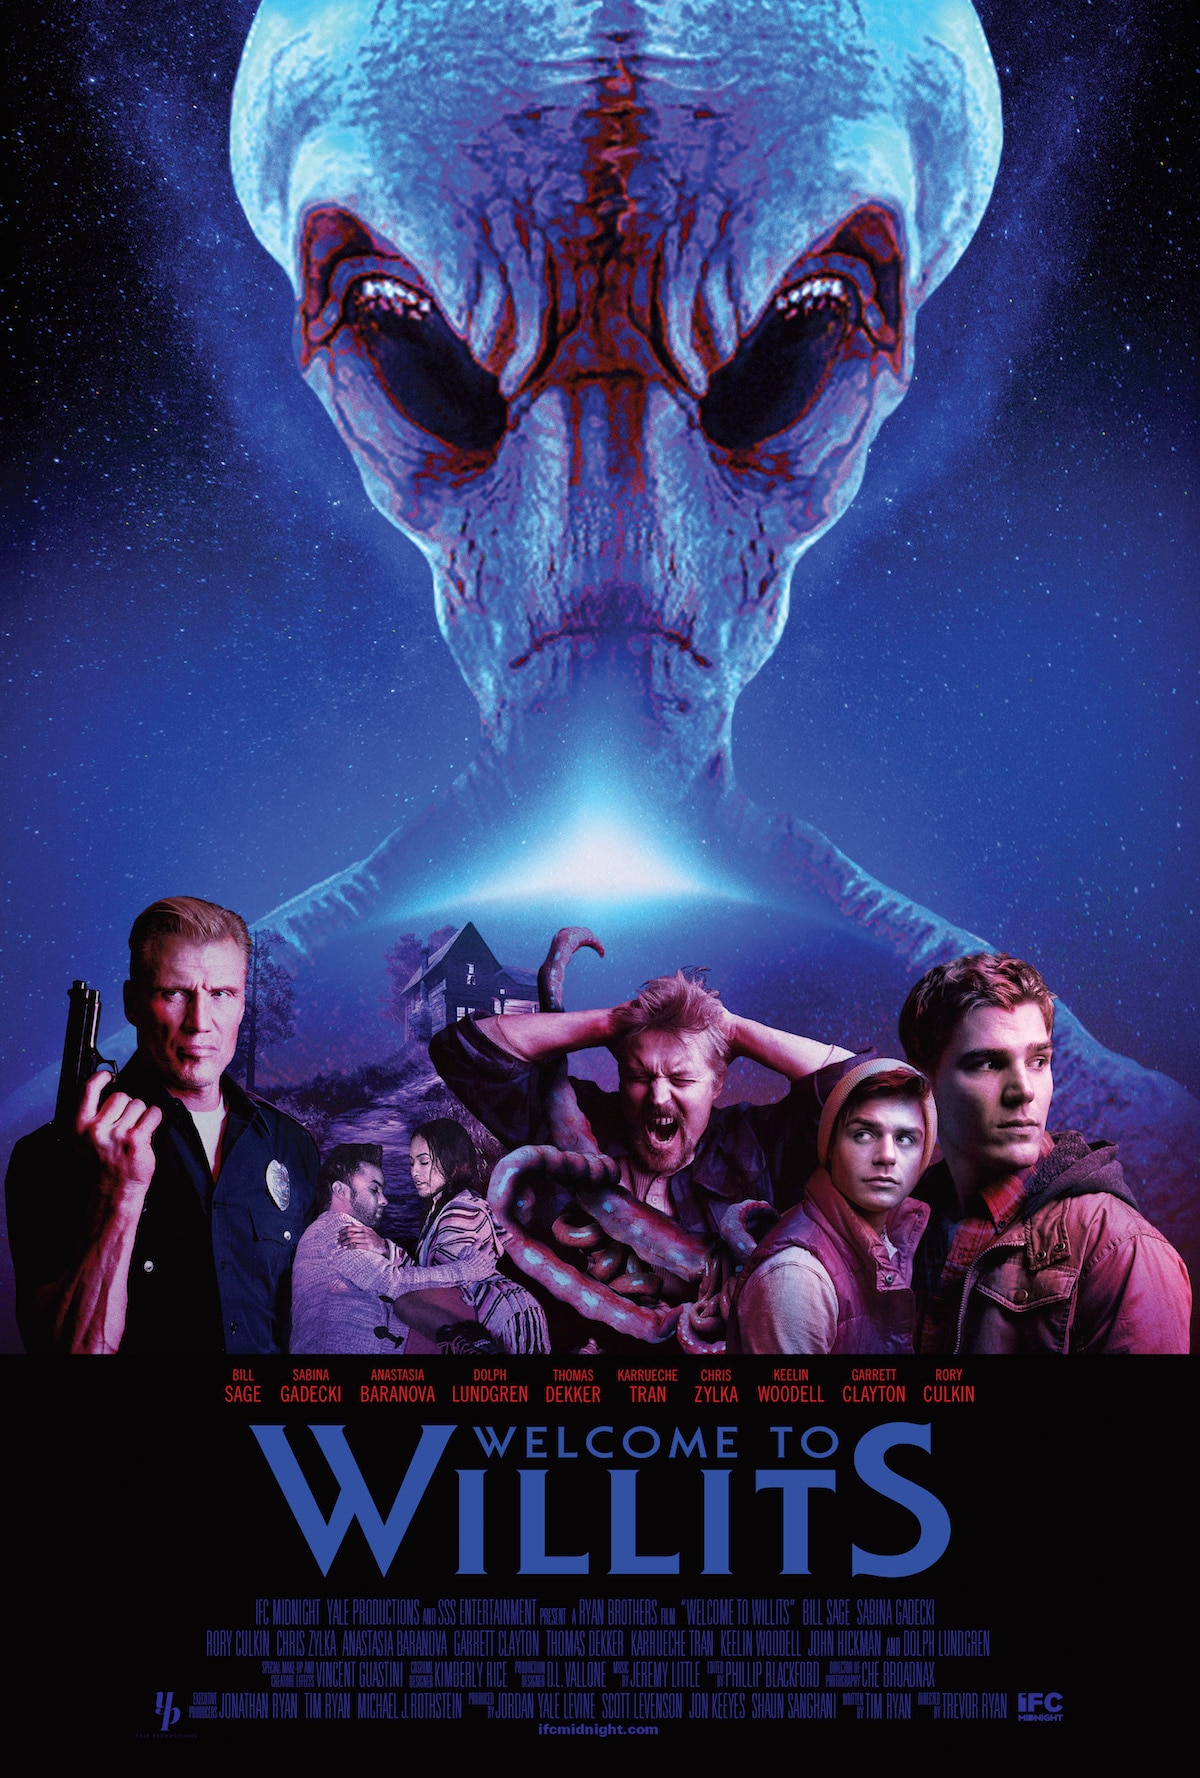 WELCOME TO WILLITS Official Poster IFC Midnight - New Stills Offer a Bloody Welcome to Willits